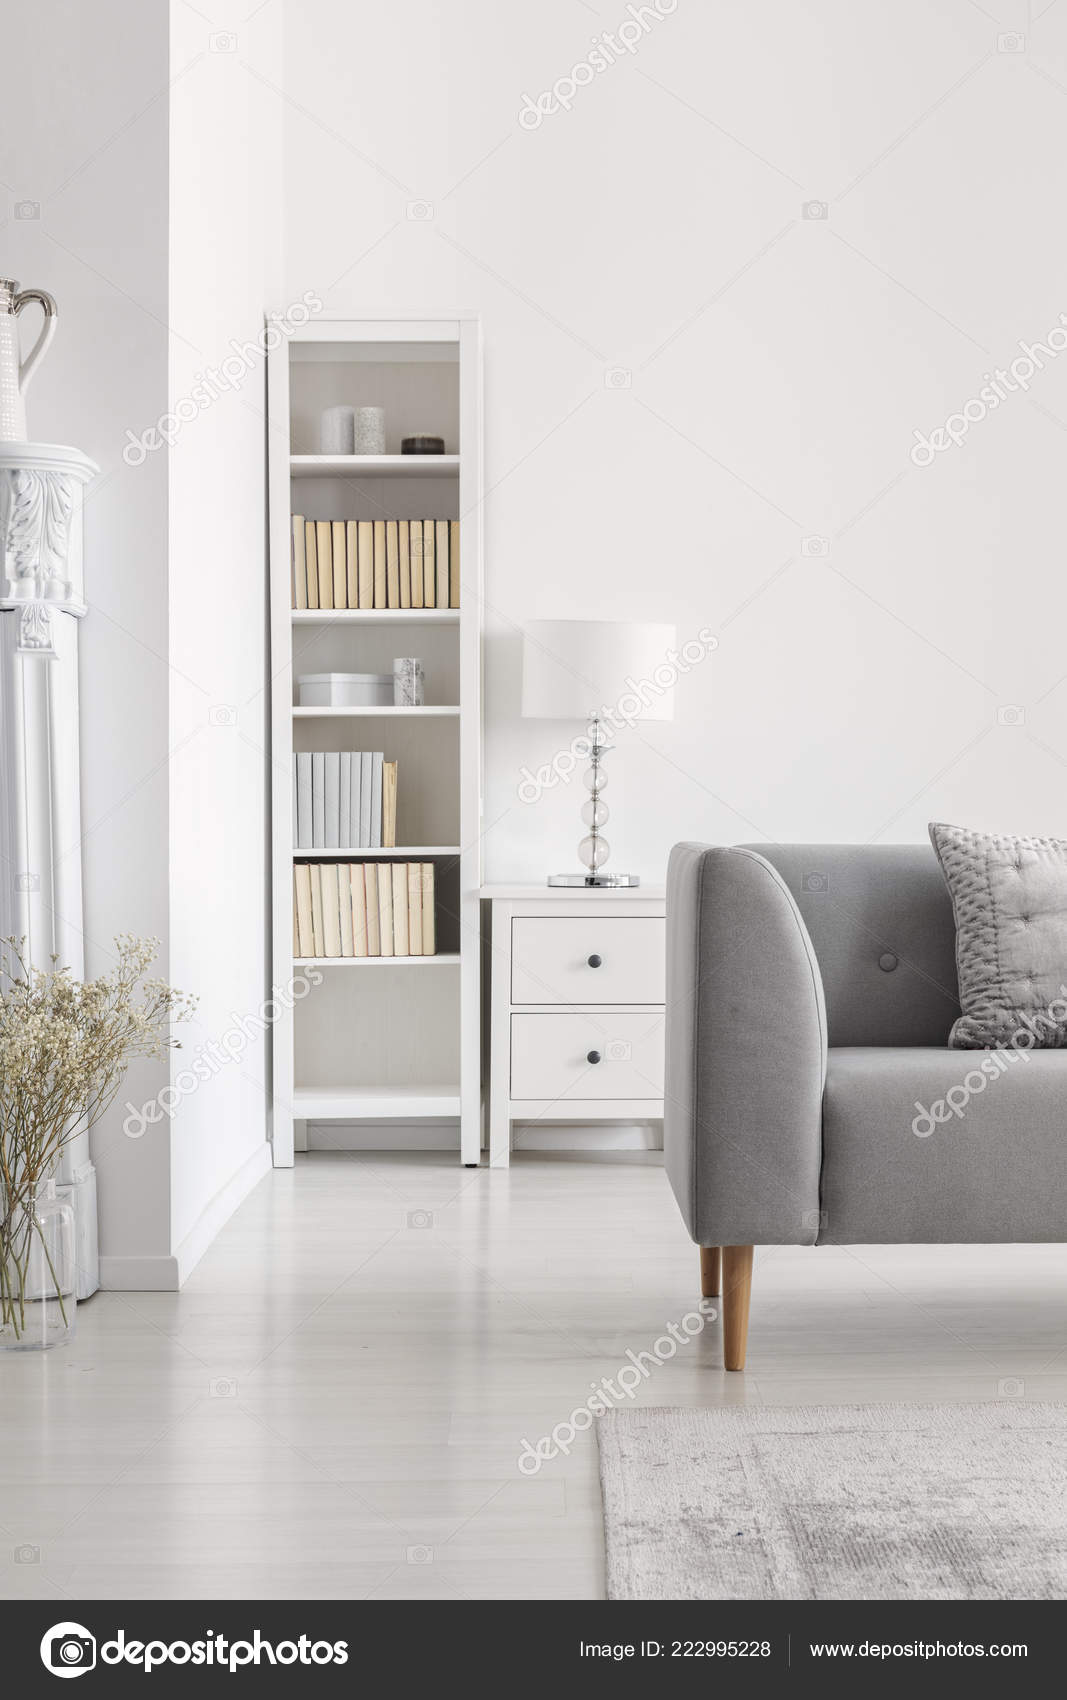 Bookshelf Next To Cabinet With Lamp In White Living Room Interior Grey Couch And Plant Real Photo By Photographeeeu